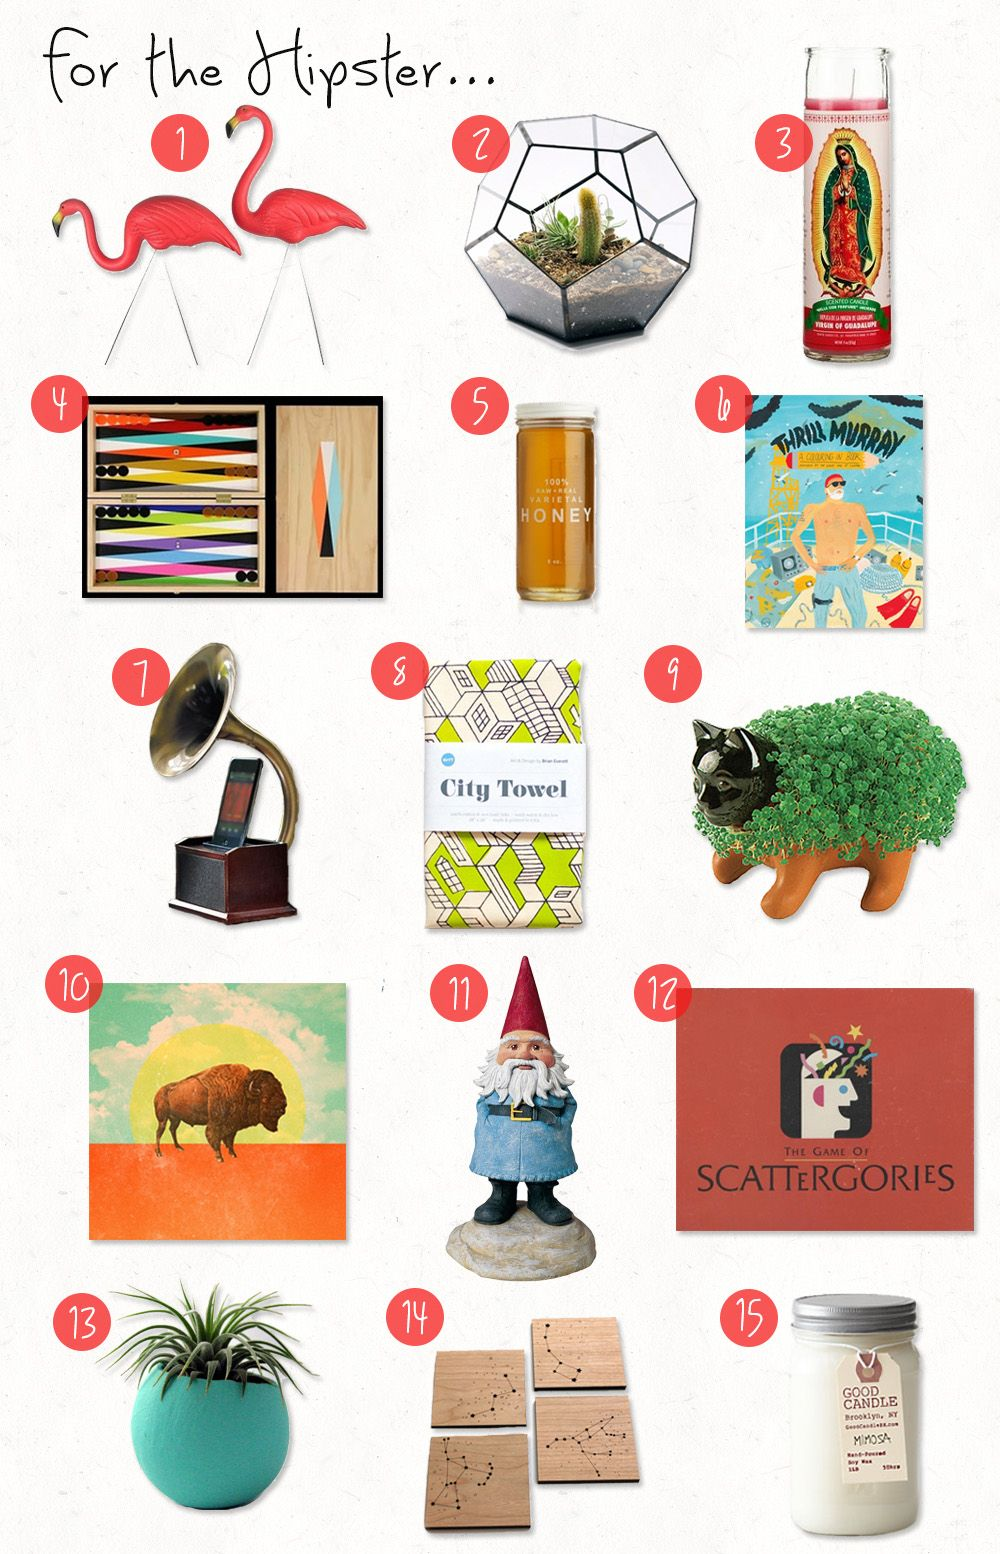 15 Perfect housewarming gift ideas for the Hipster! | Housewarming ...